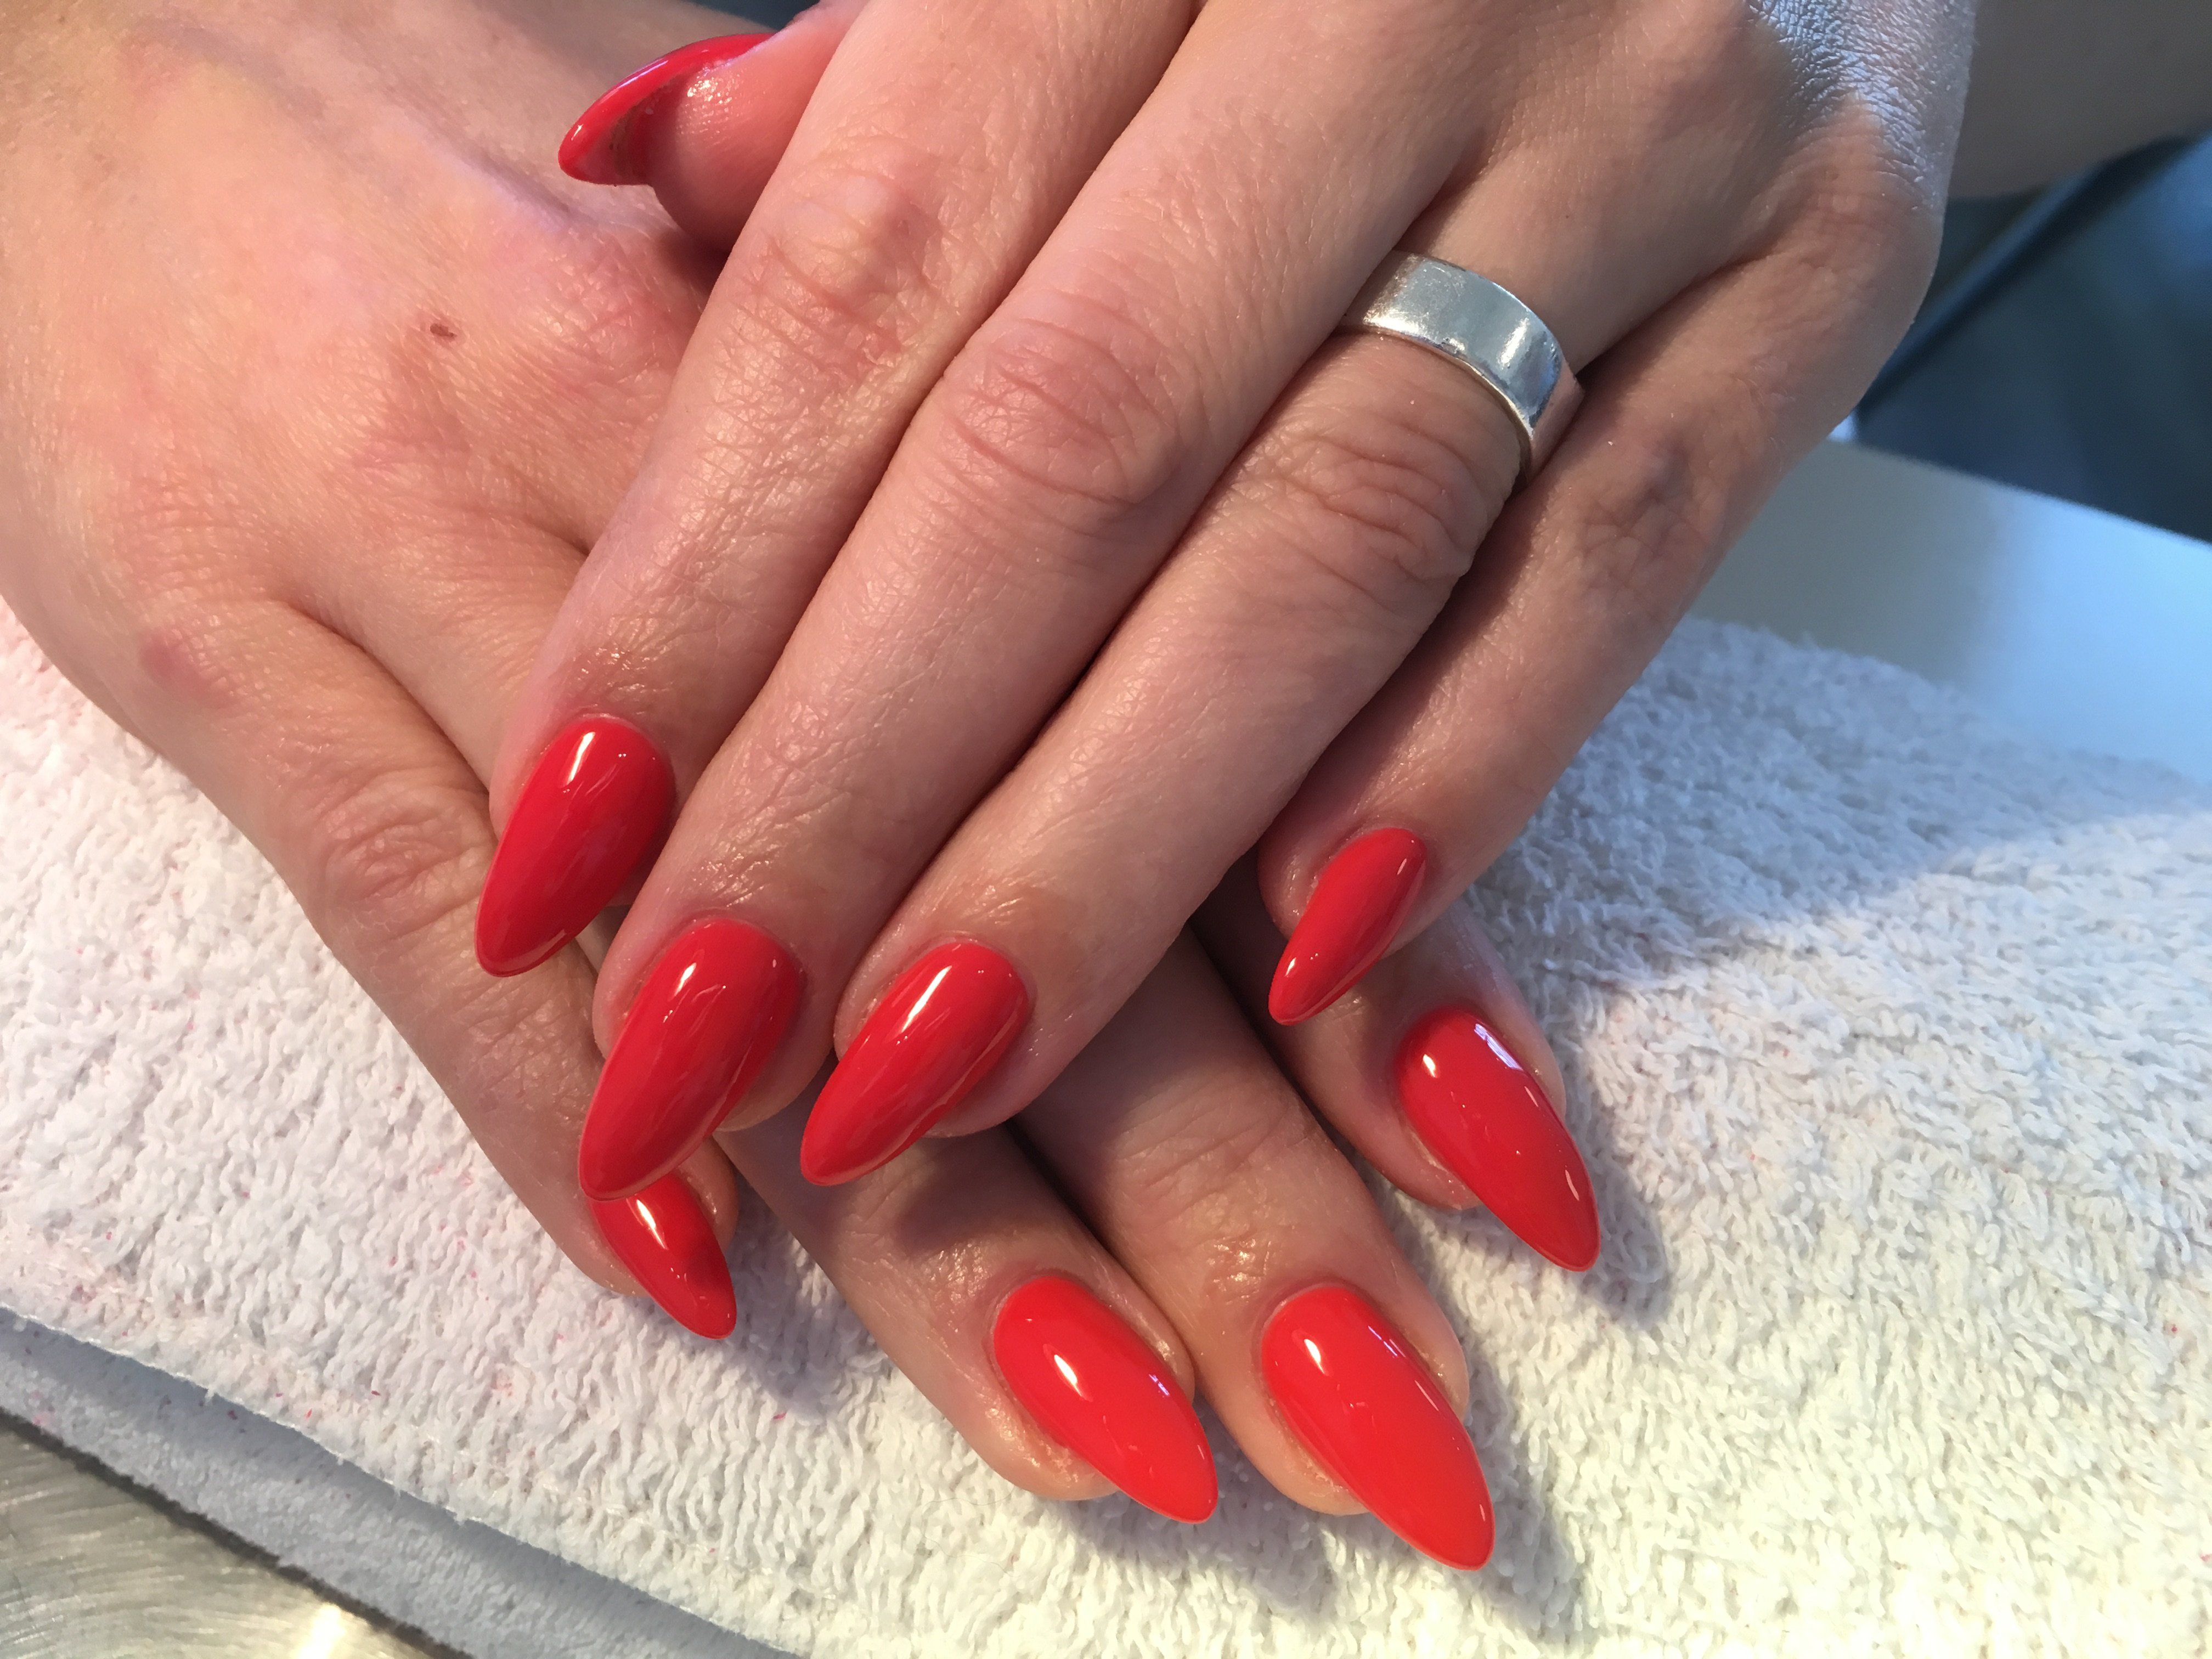 Care 4 Your Nails Beauty Salon Acryl Nagels Foto 7 Care 4 Your Nails Beauty Salon